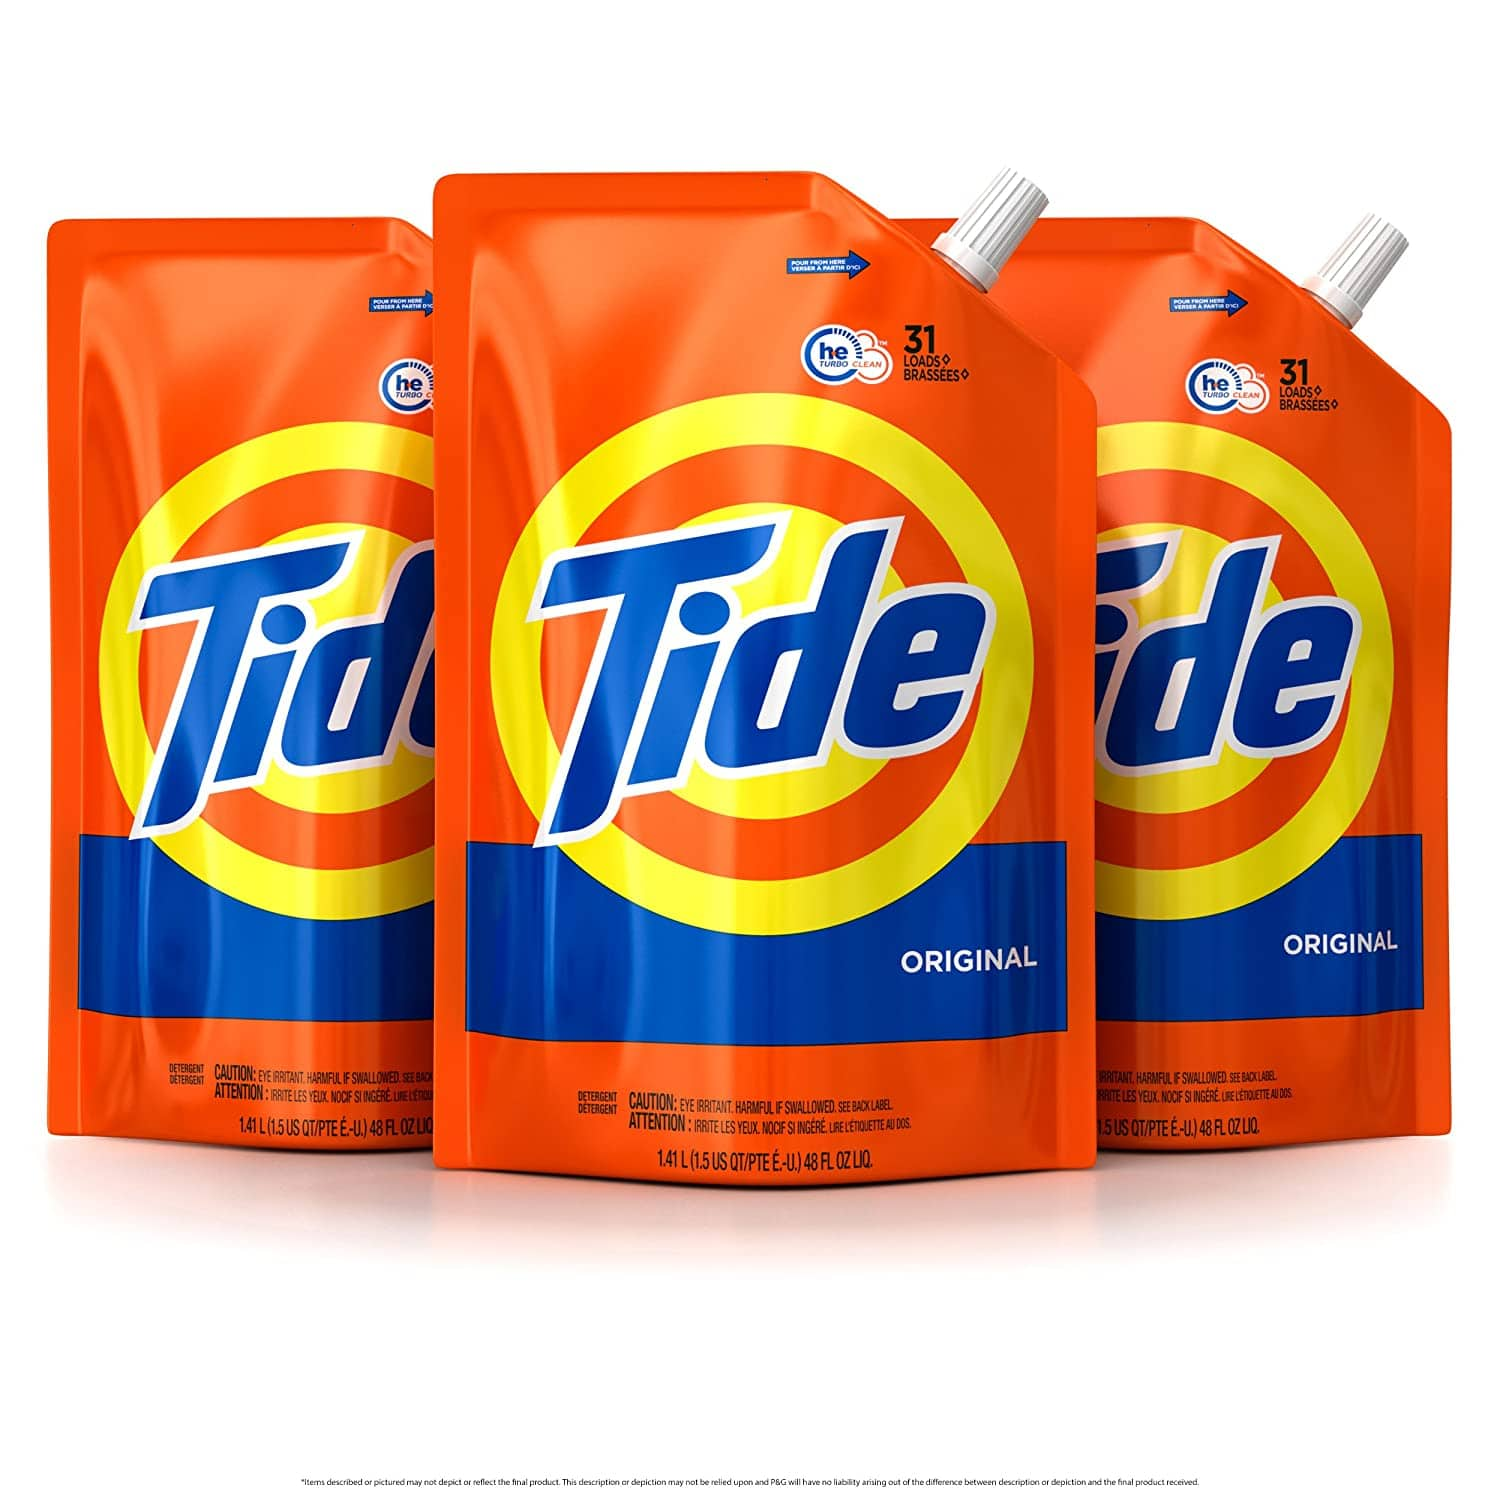 9-Pack 48-Oz Tide HE Laundry Detergent Pouches (Original) $39 ($4.33 each) + Free Shipping